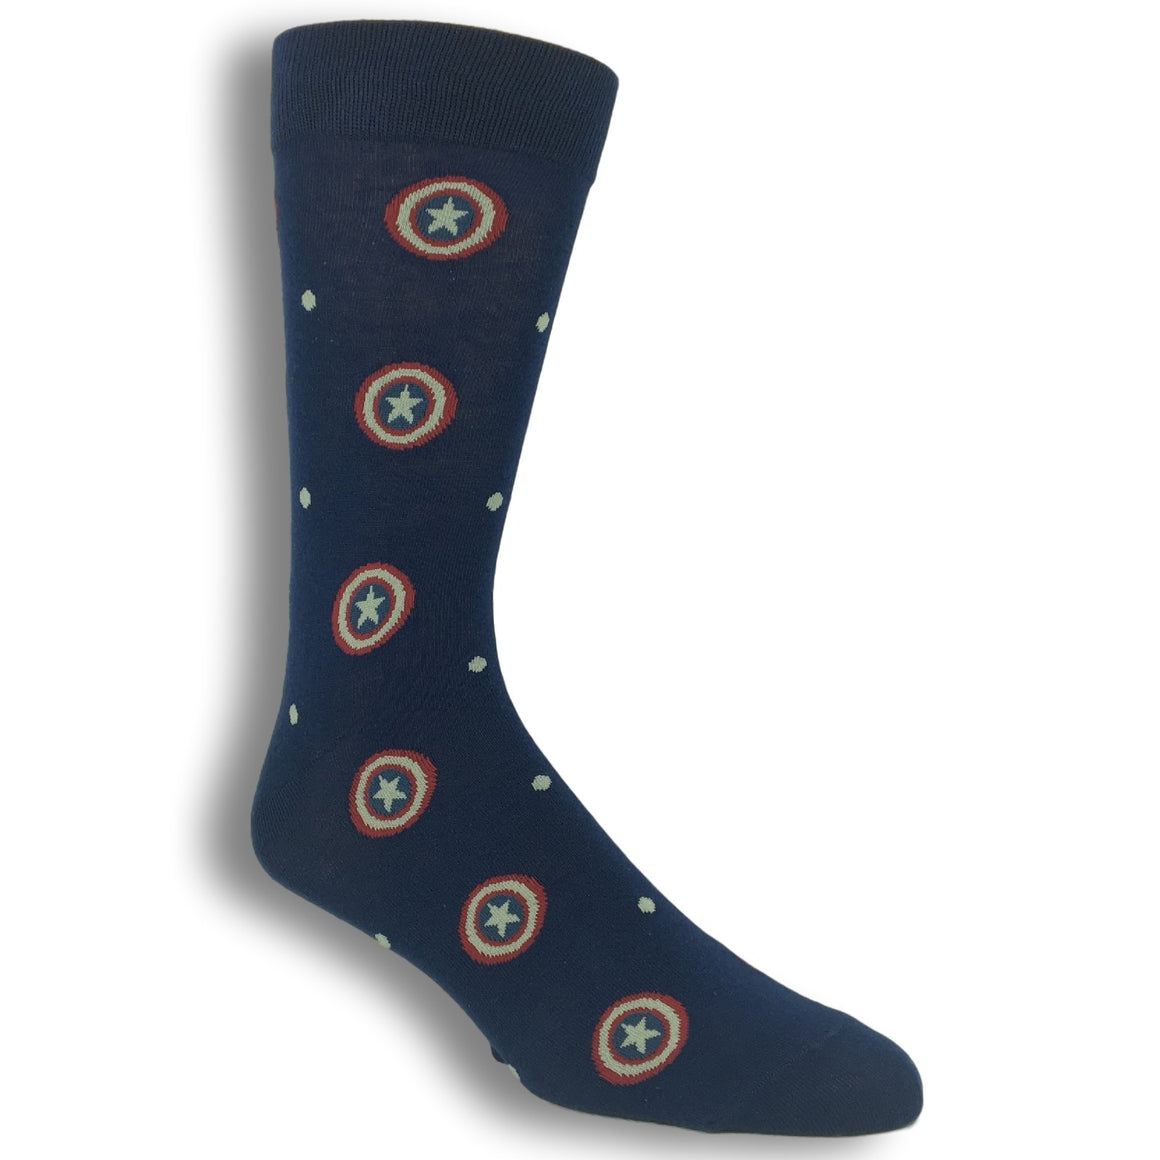 Socks - Marvel Captain America Dress Socks